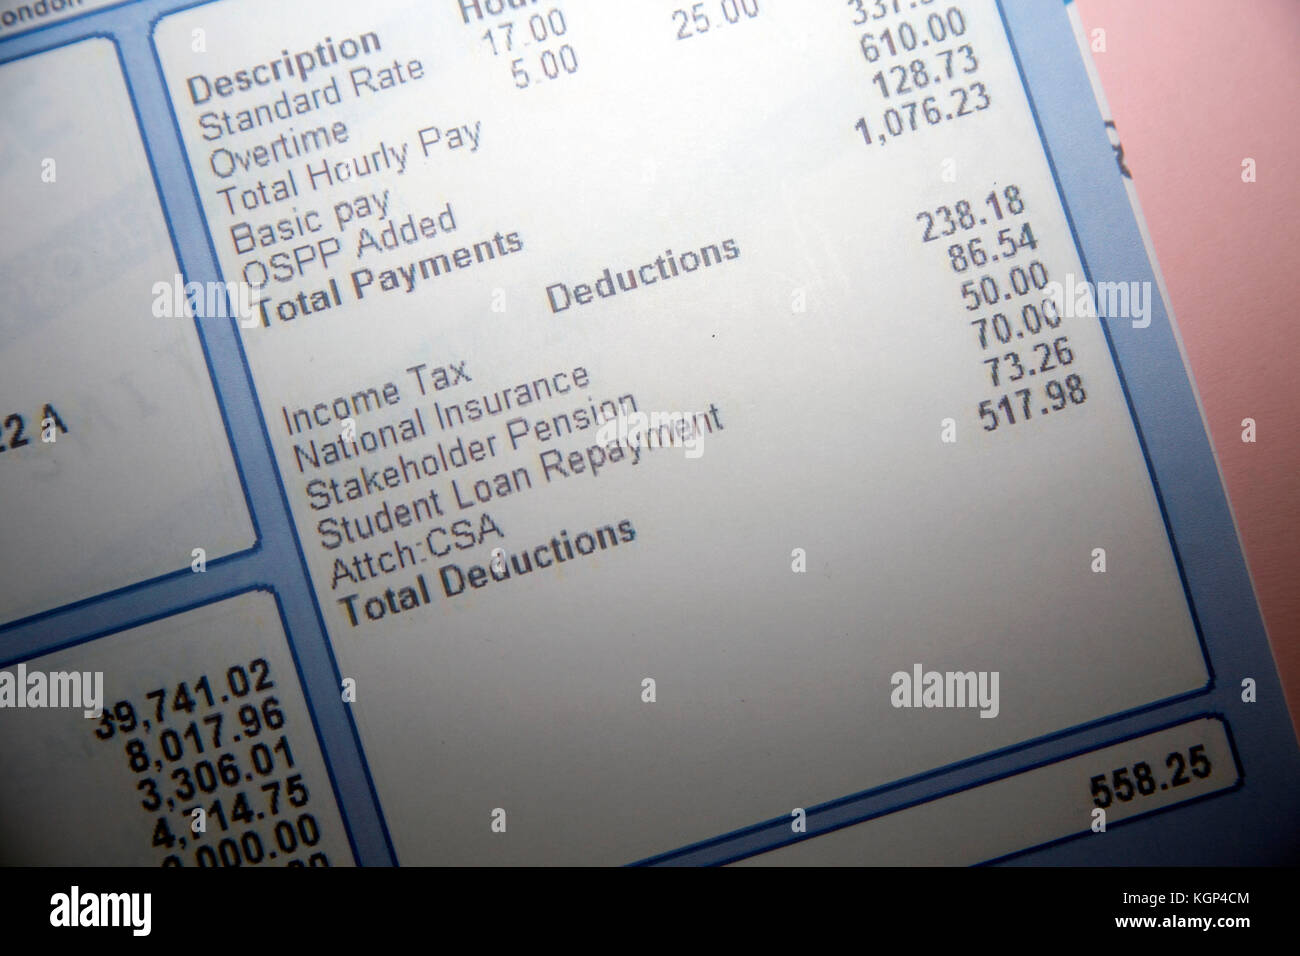 Student Loan Repayment and CSA payment shown on payslip, London - Stock Image